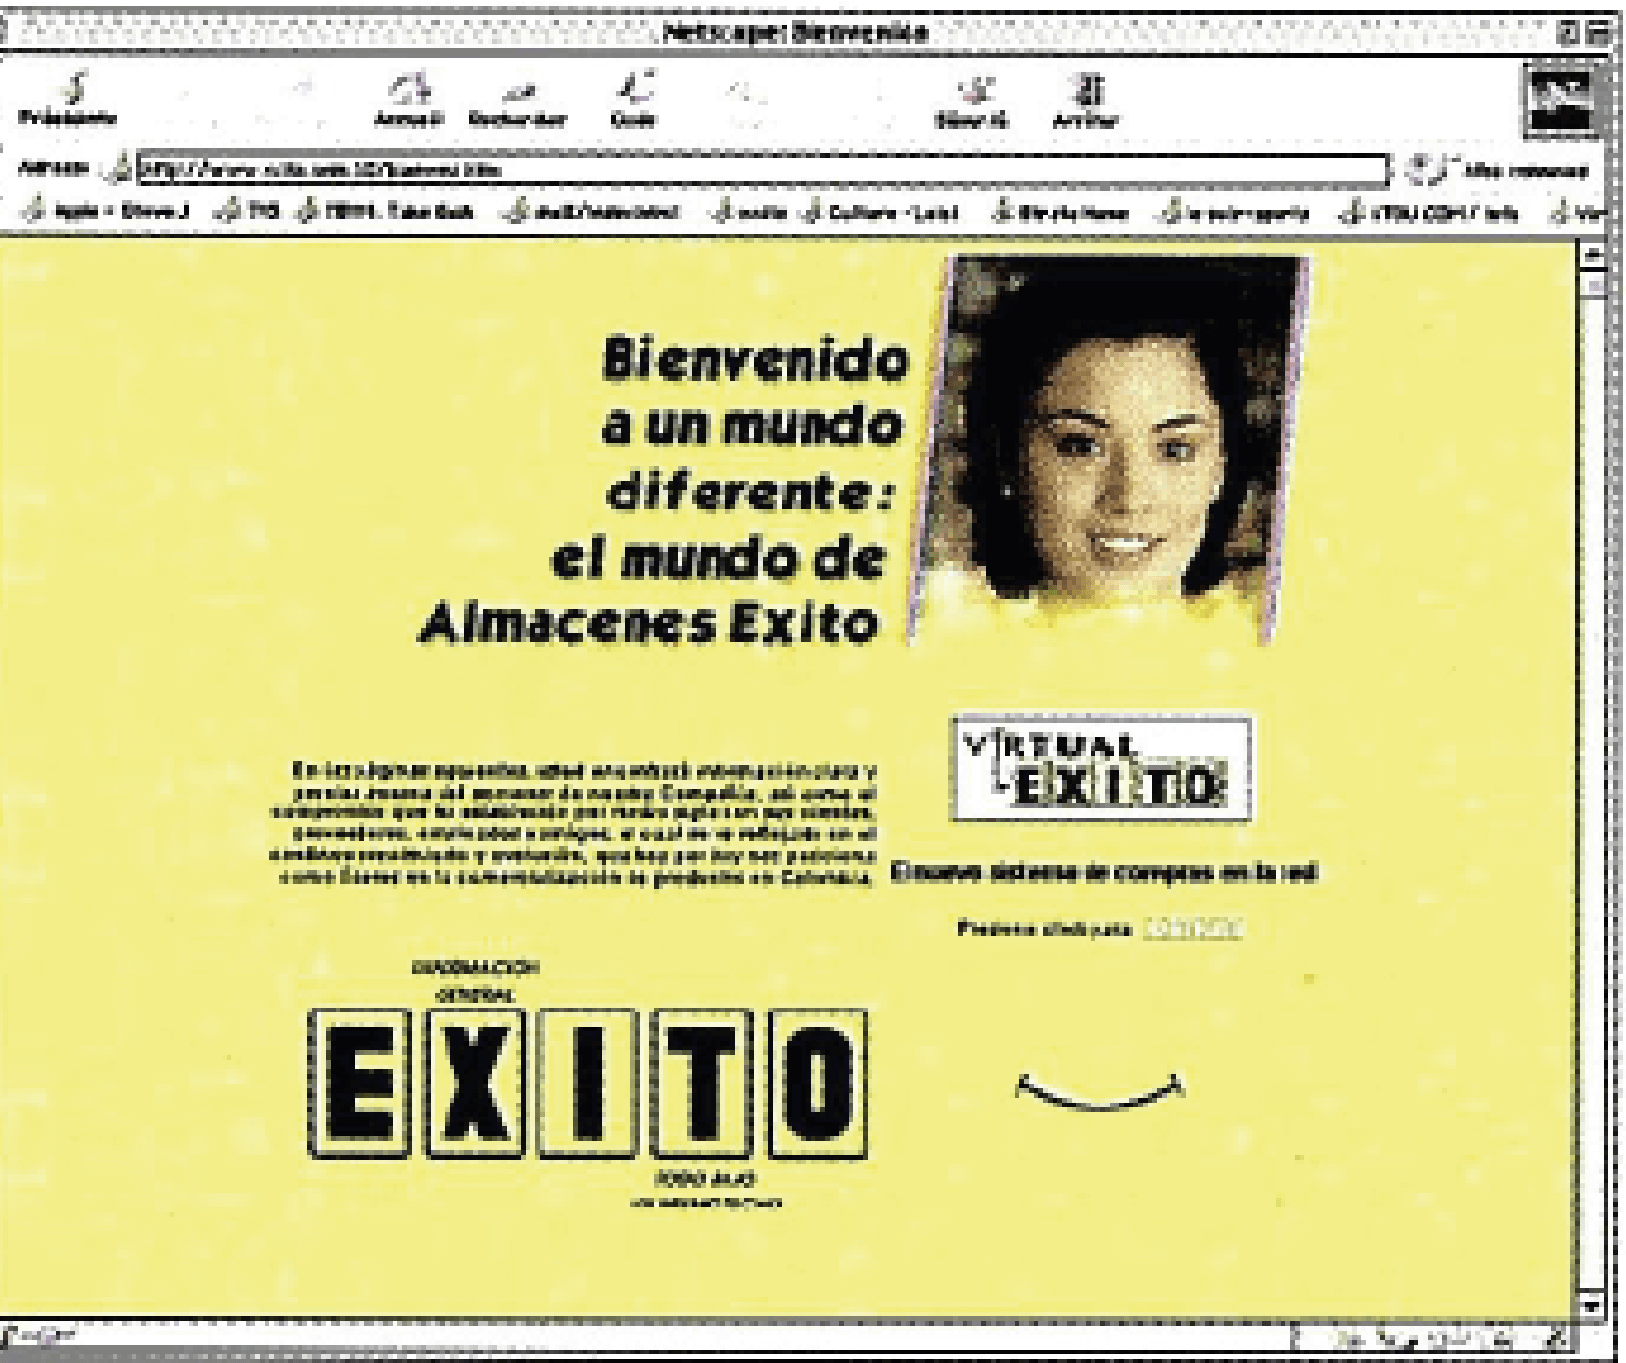 www.exito.co begins to operate